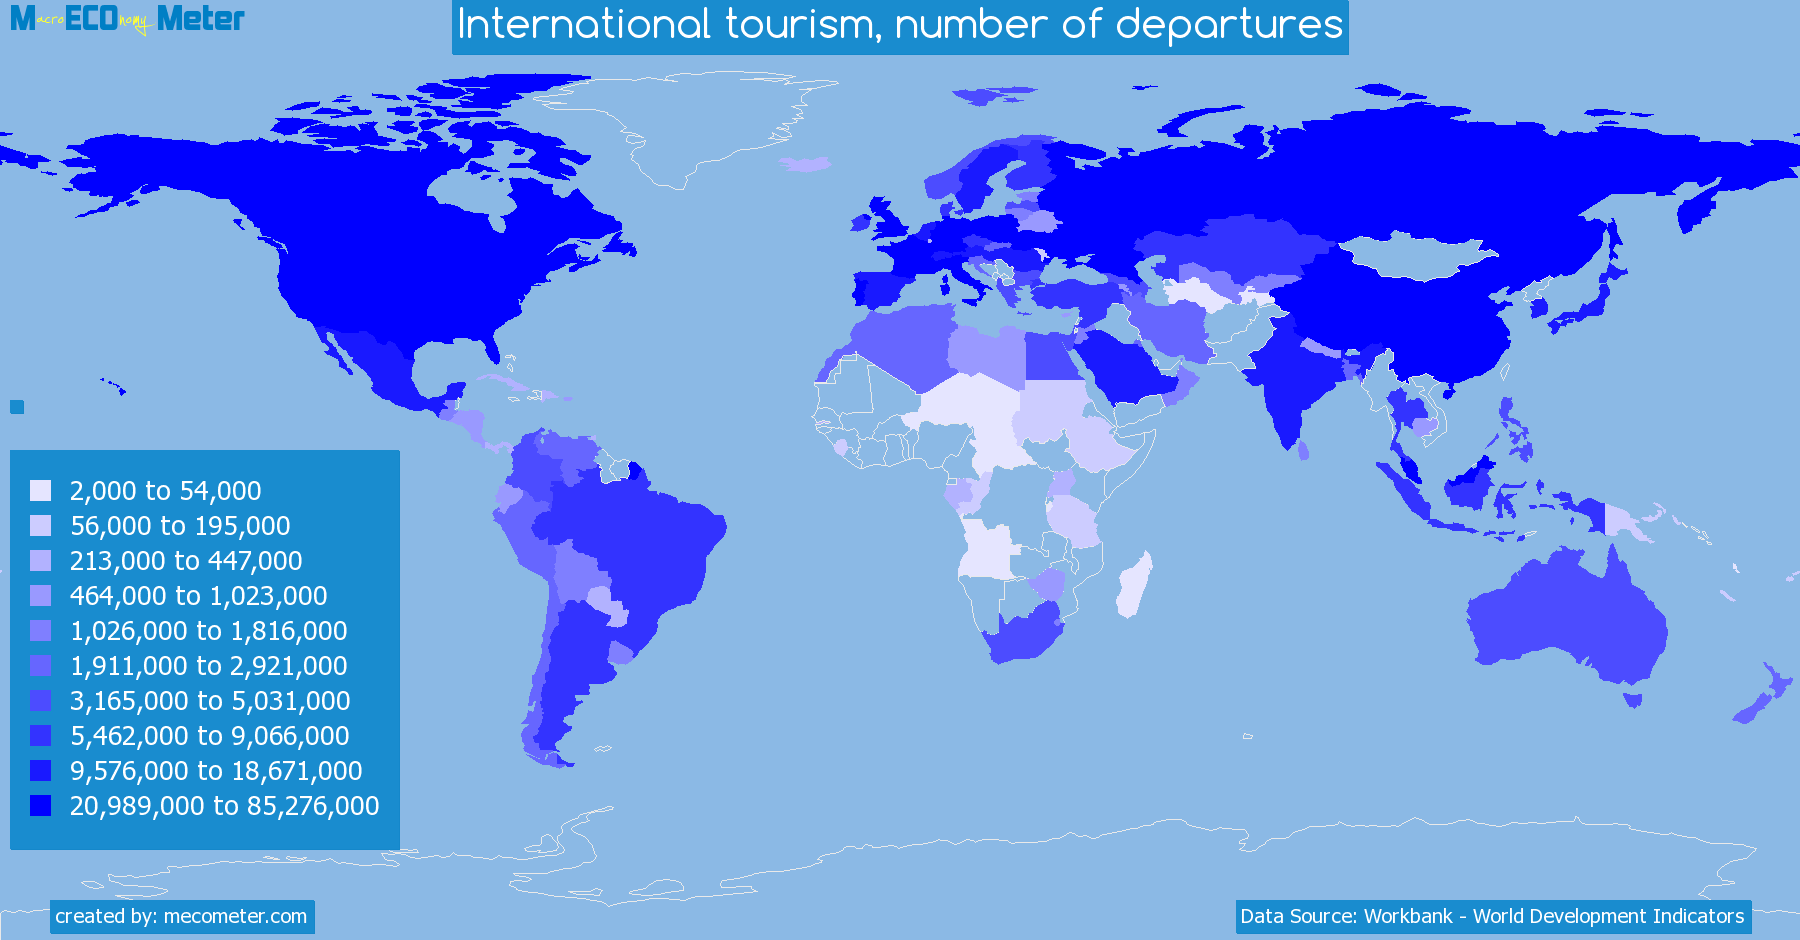 Worldmap of all countries colored to reflect the values of International tourism, number of departures